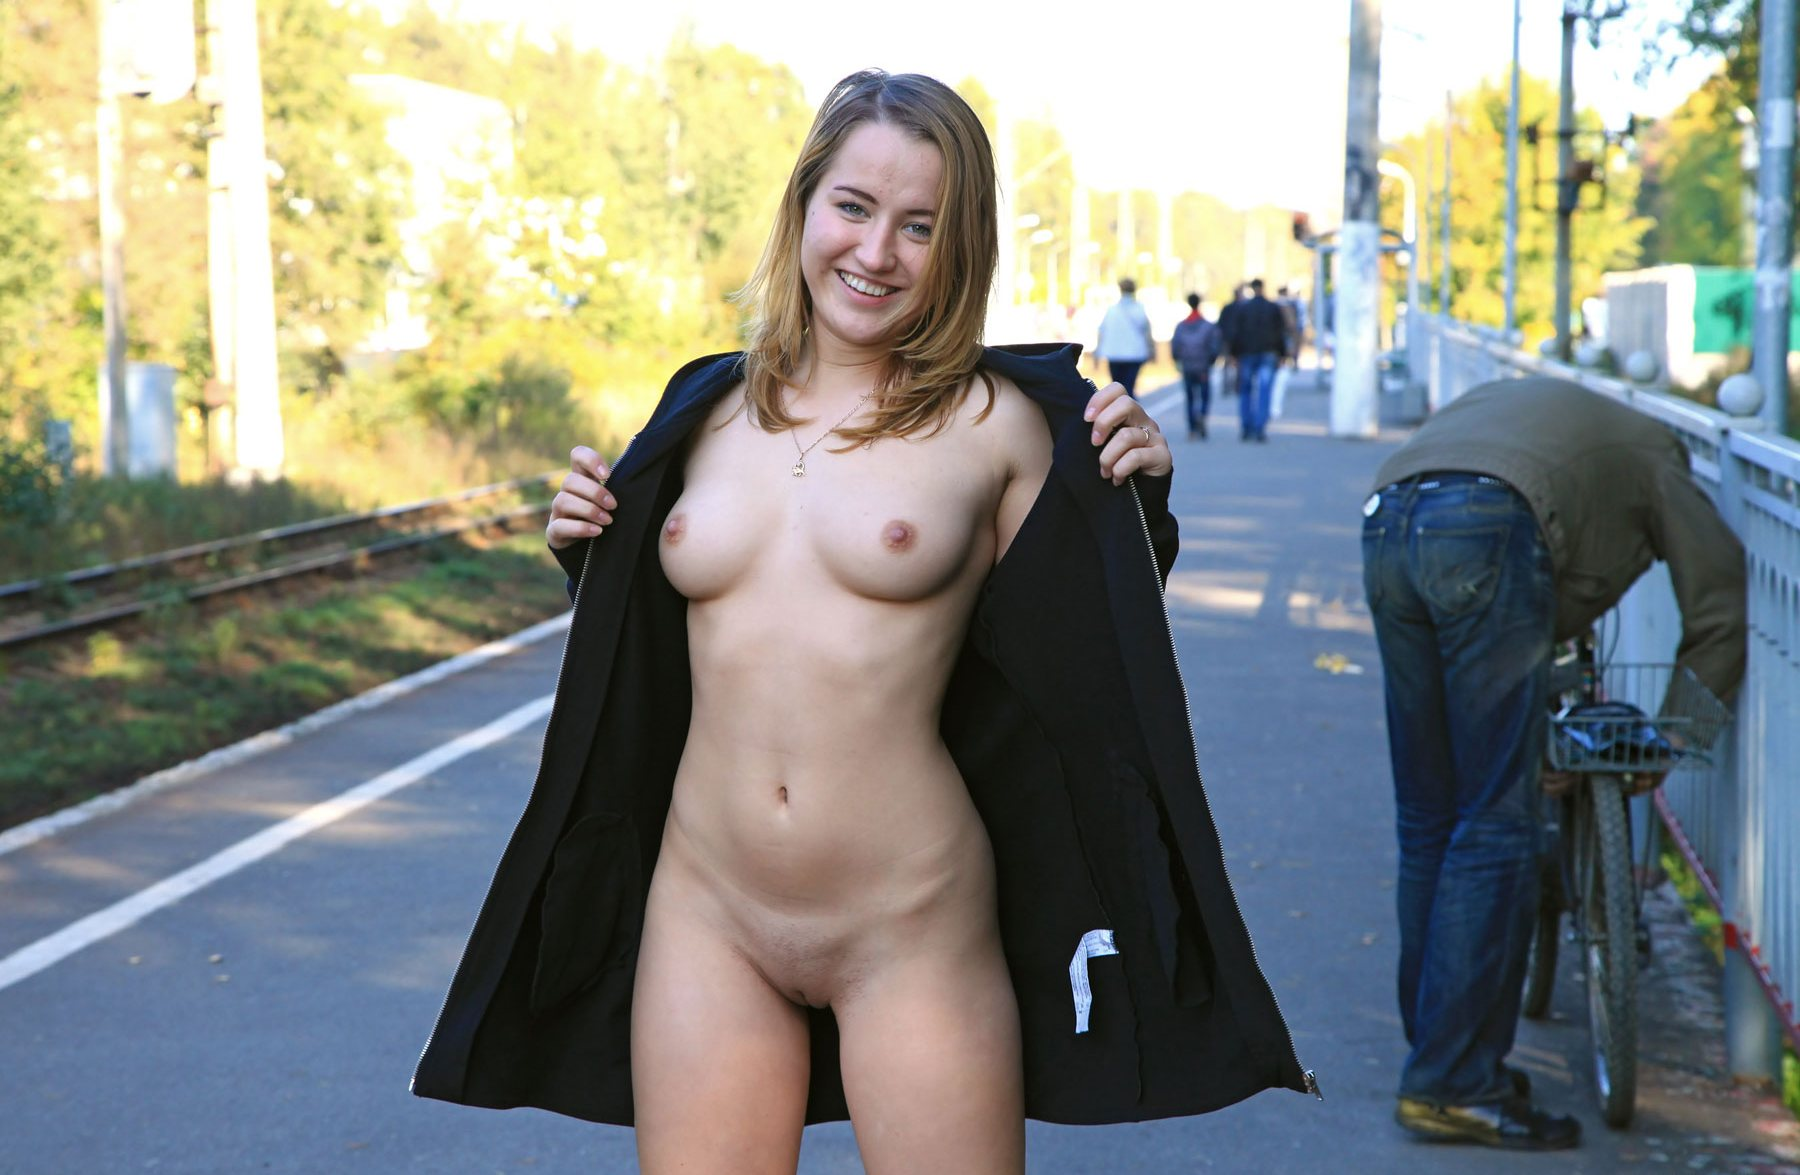 Asian Teen Naked Public